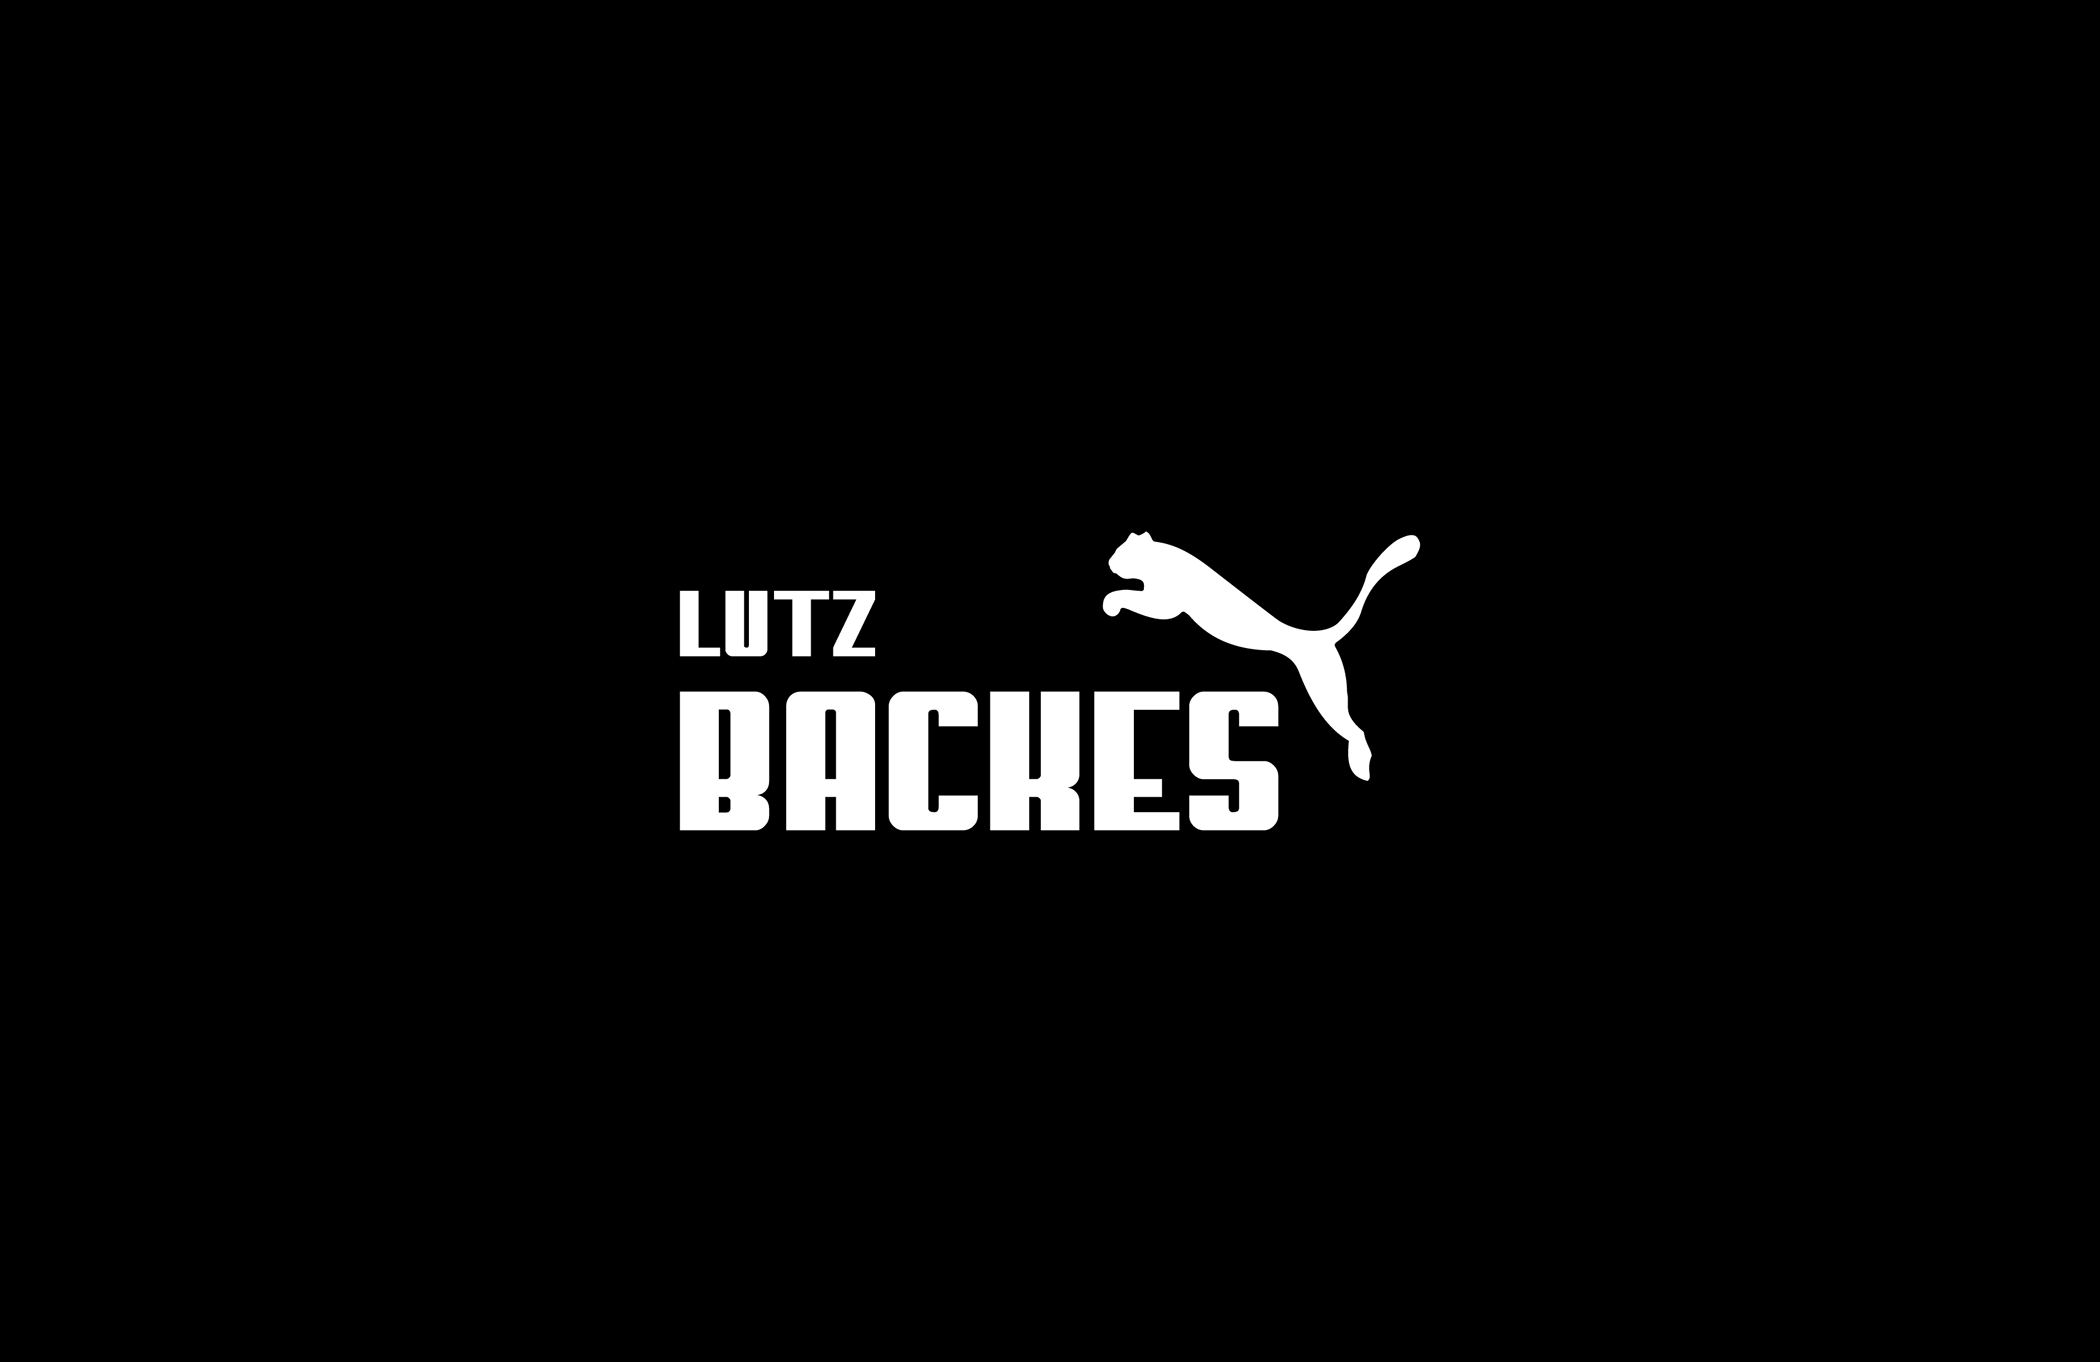 Lutz Backes - Designer of the Puma logo